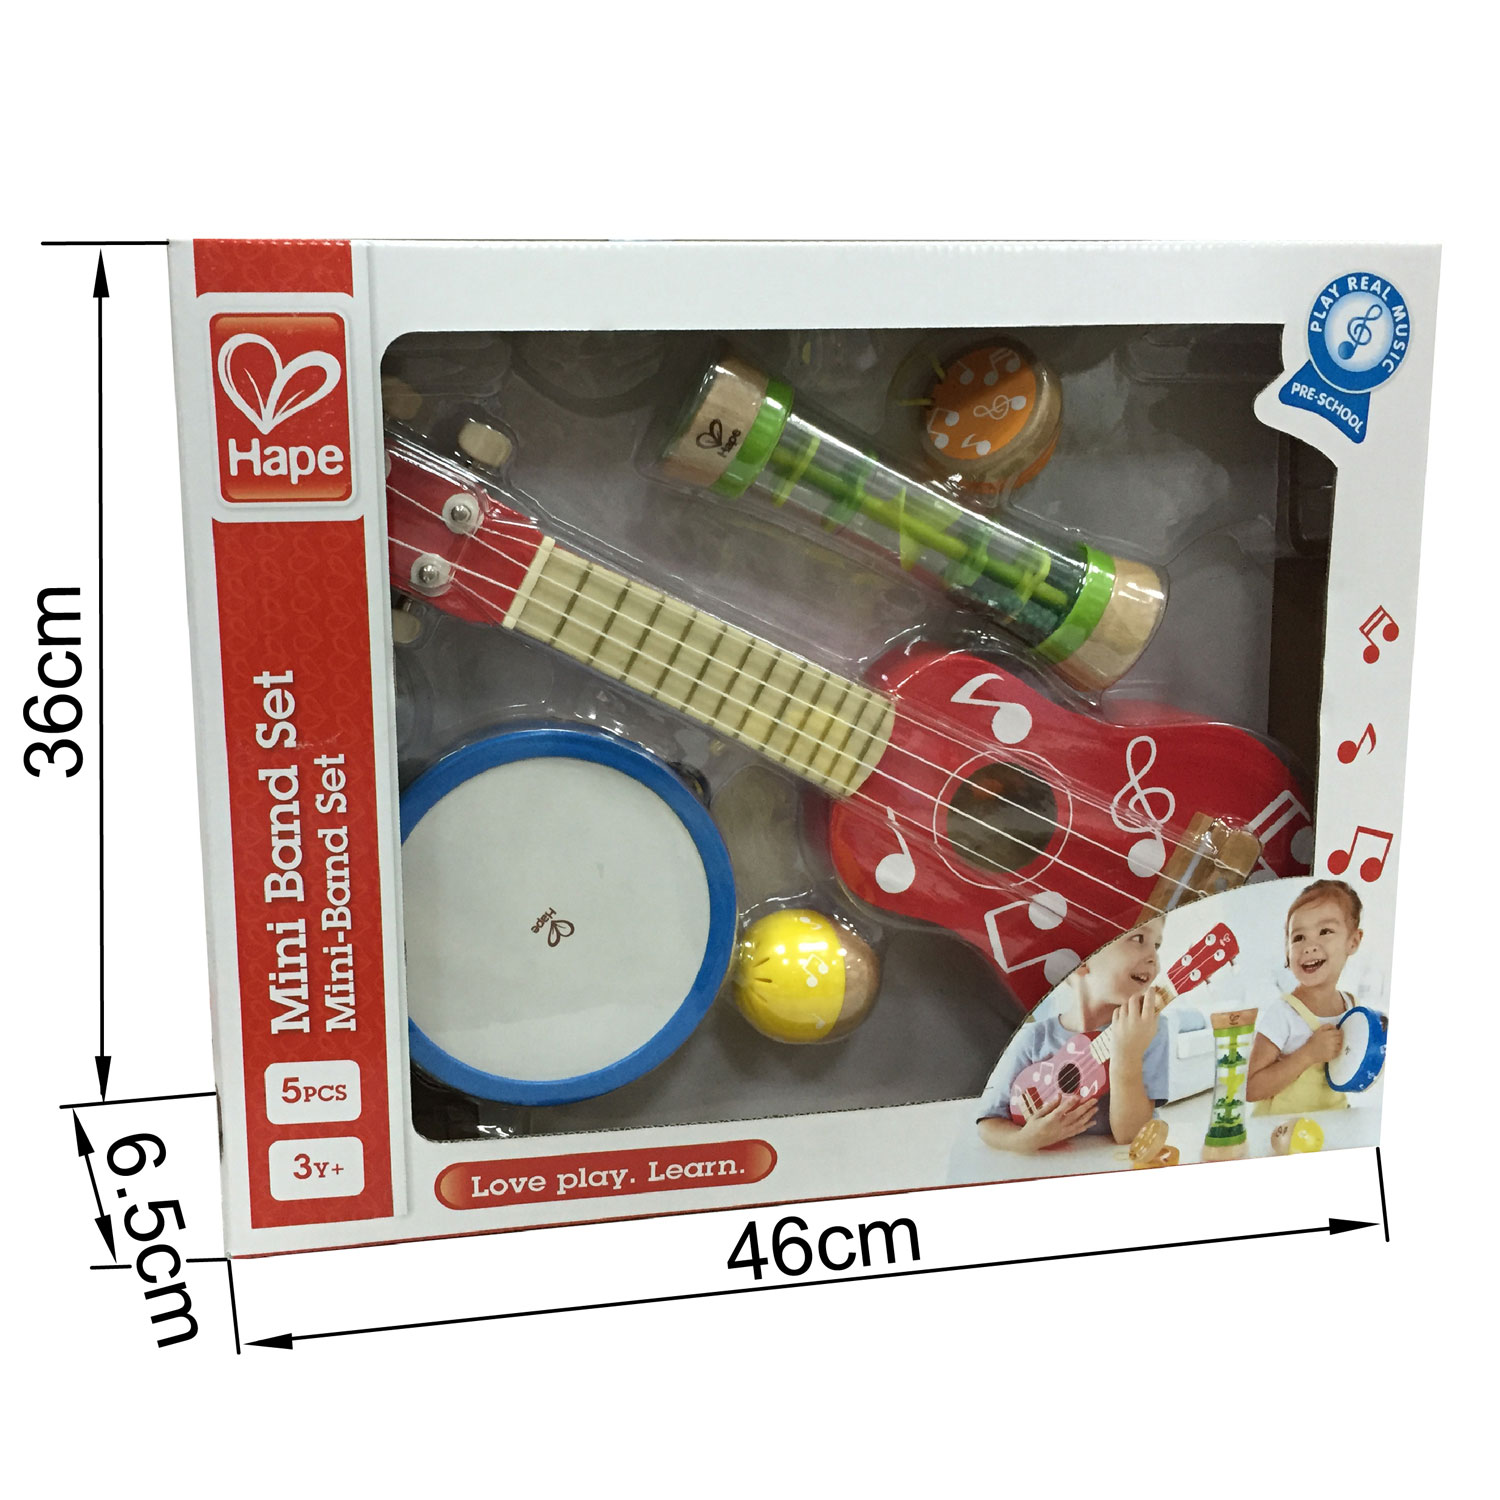 Hape Mini Band Set x 5 ~ 3+